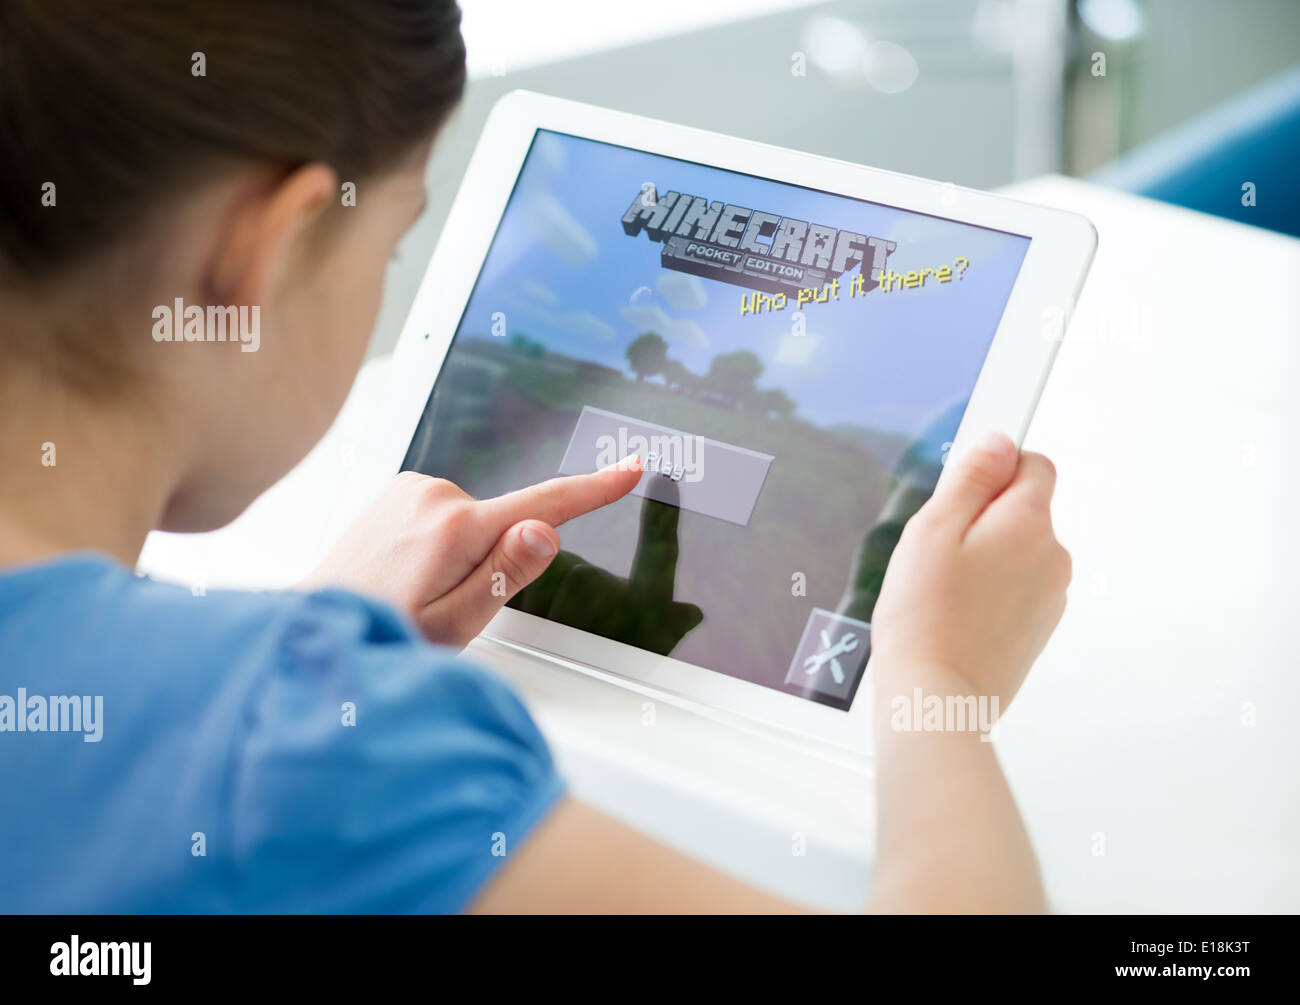 Little girl start playing Minecraft game on brand new Apple iPad Air. Minecraft is very popular game for mobile devices - Stock Image